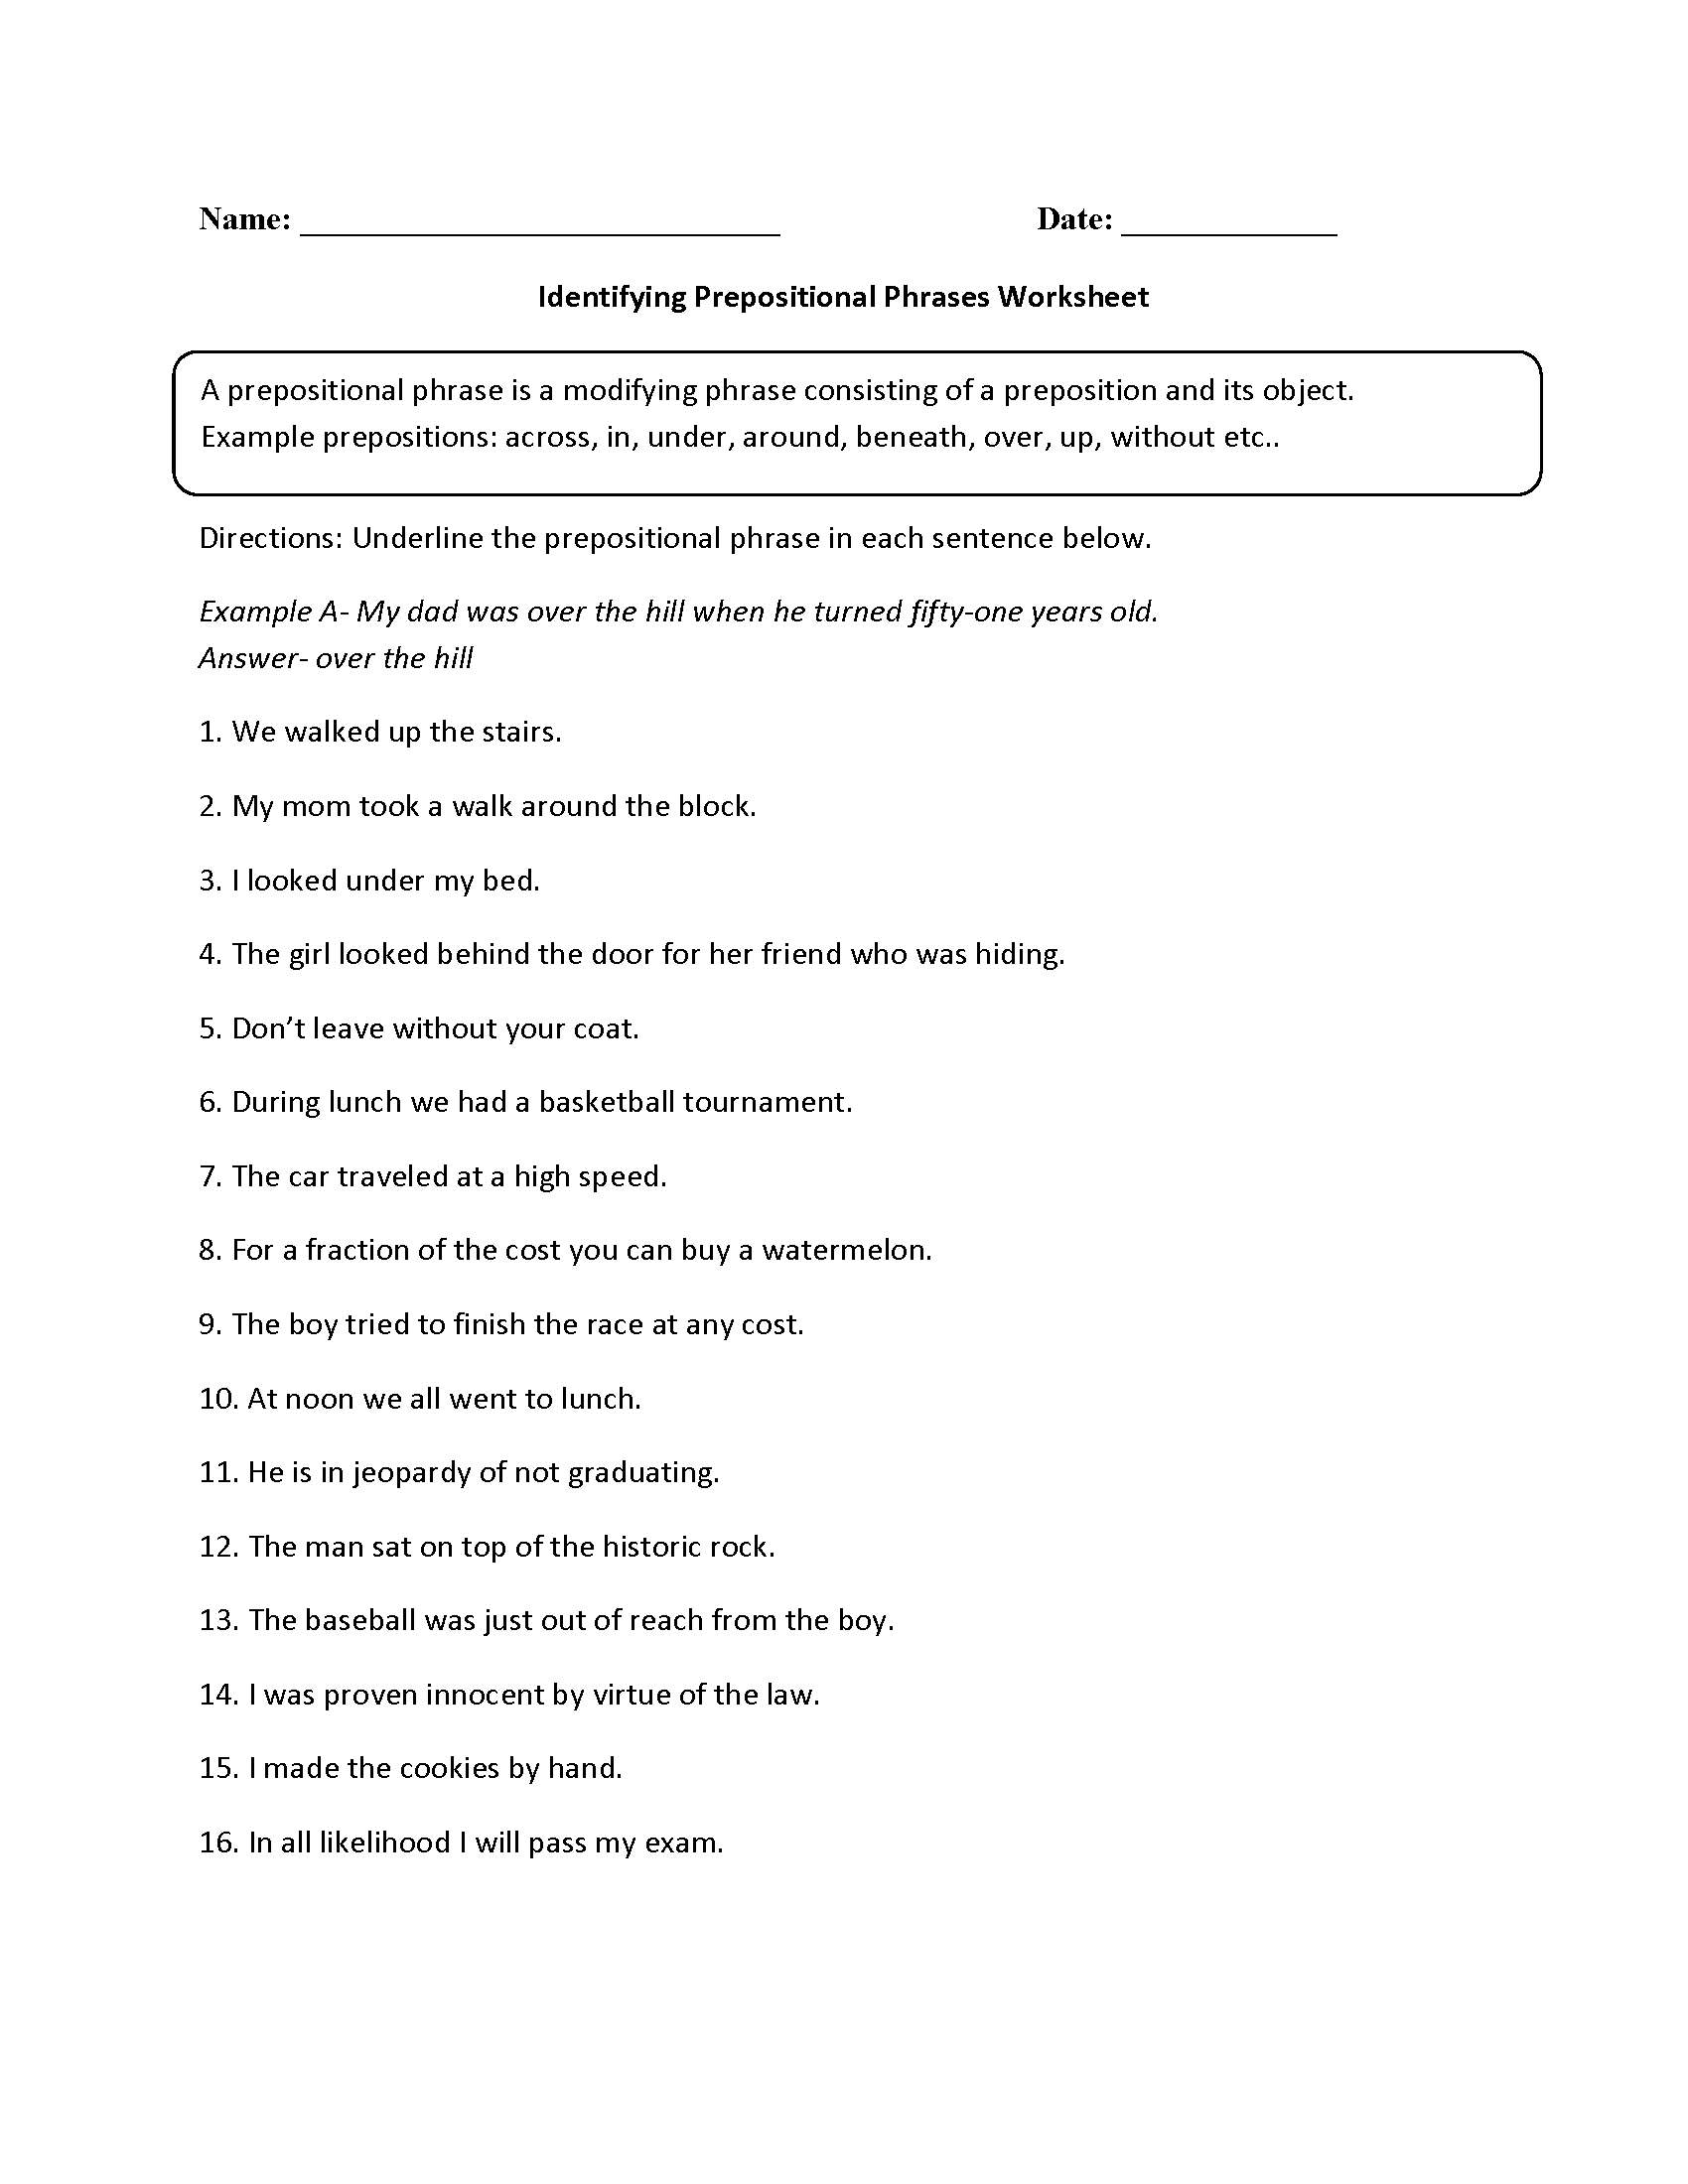 Prepositional Phrases Worksheets | Identifying Prepositional Phrases ...